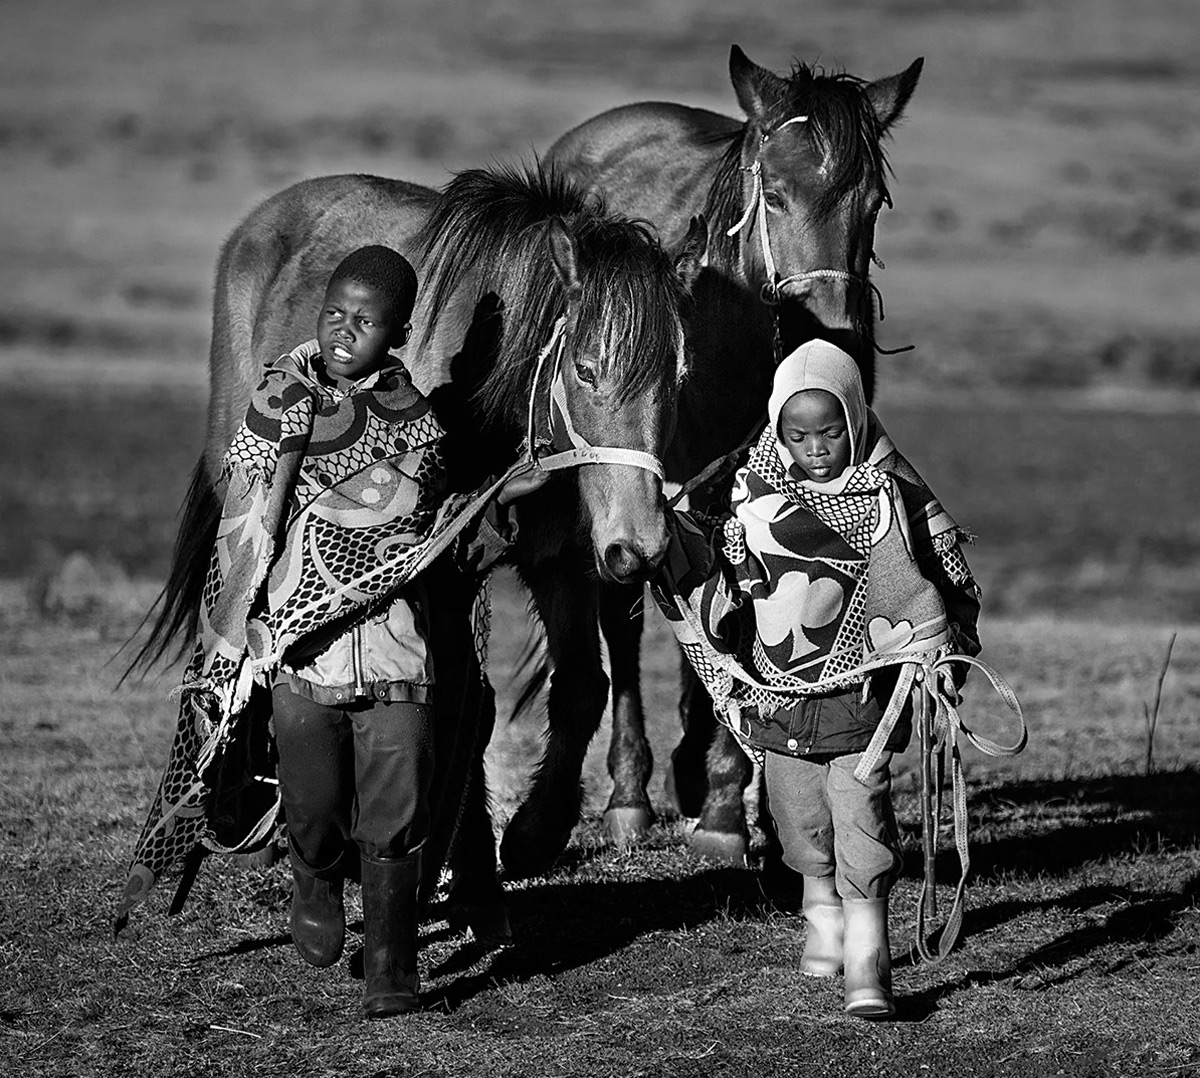 Two Basotho boys leading their horses toward the yearly King's horse race near Semonkong, Lesotho © Hesté de Beer